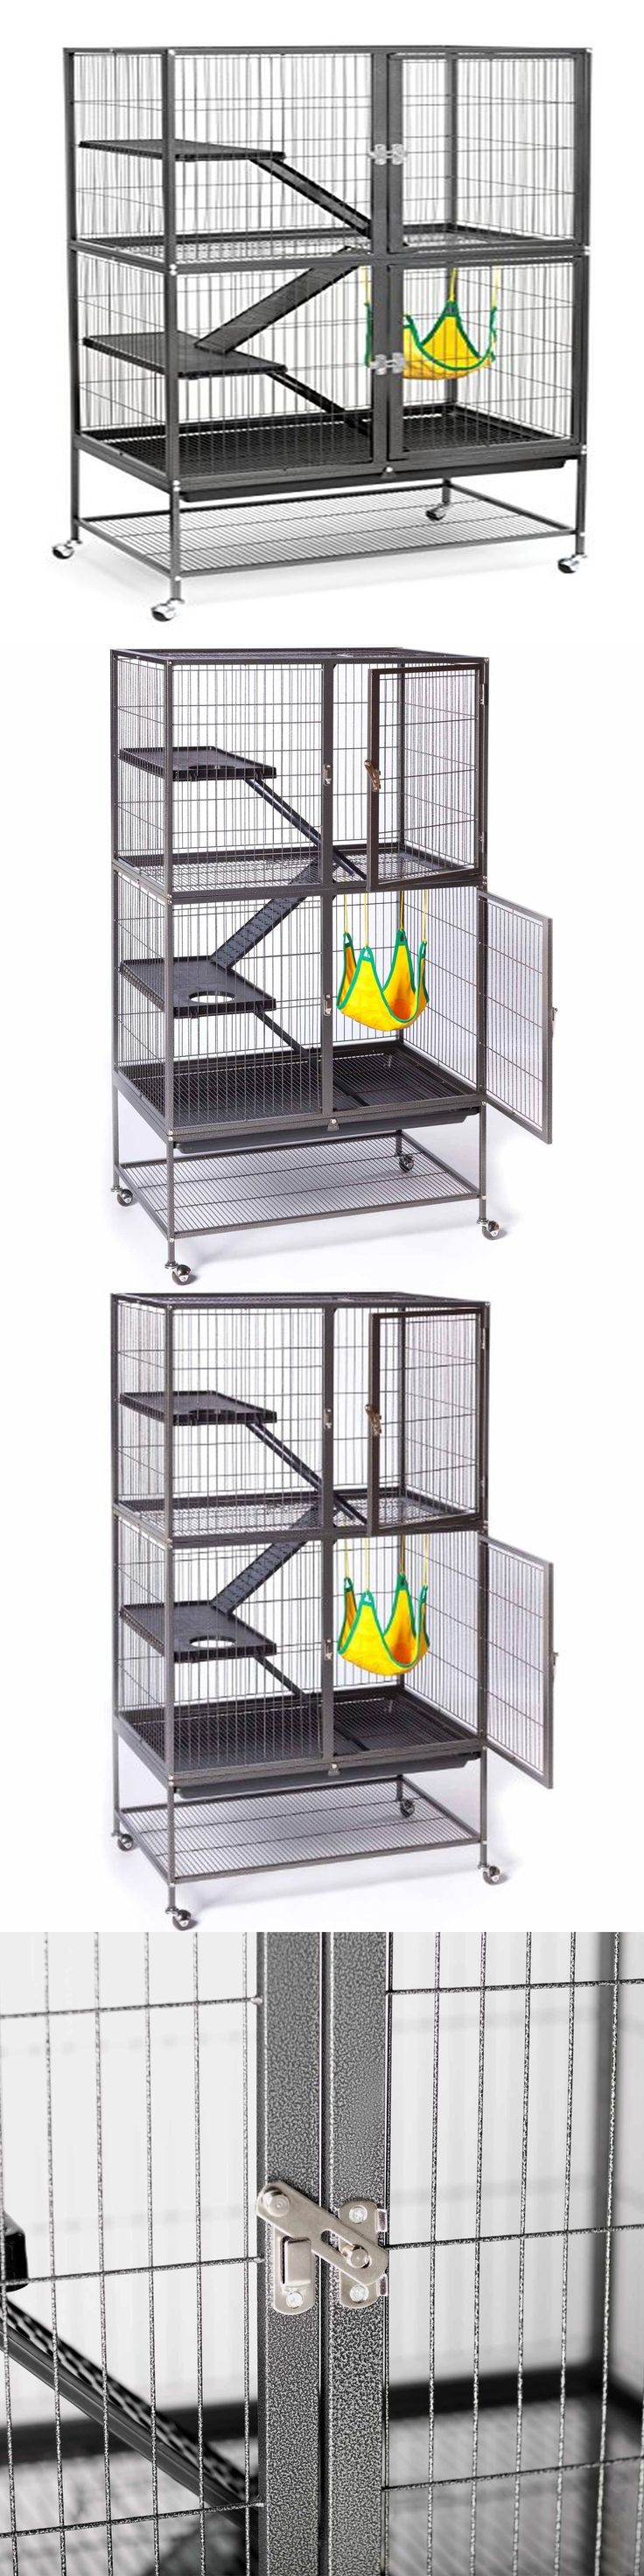 Diy catio plan the sanctuary catio plans with 6x8 and 8x10 options - Cages And Enclosure 63108 Ferret Cage Small Pet Chinchilla Rabbit Hamster Guinea Rat Metal